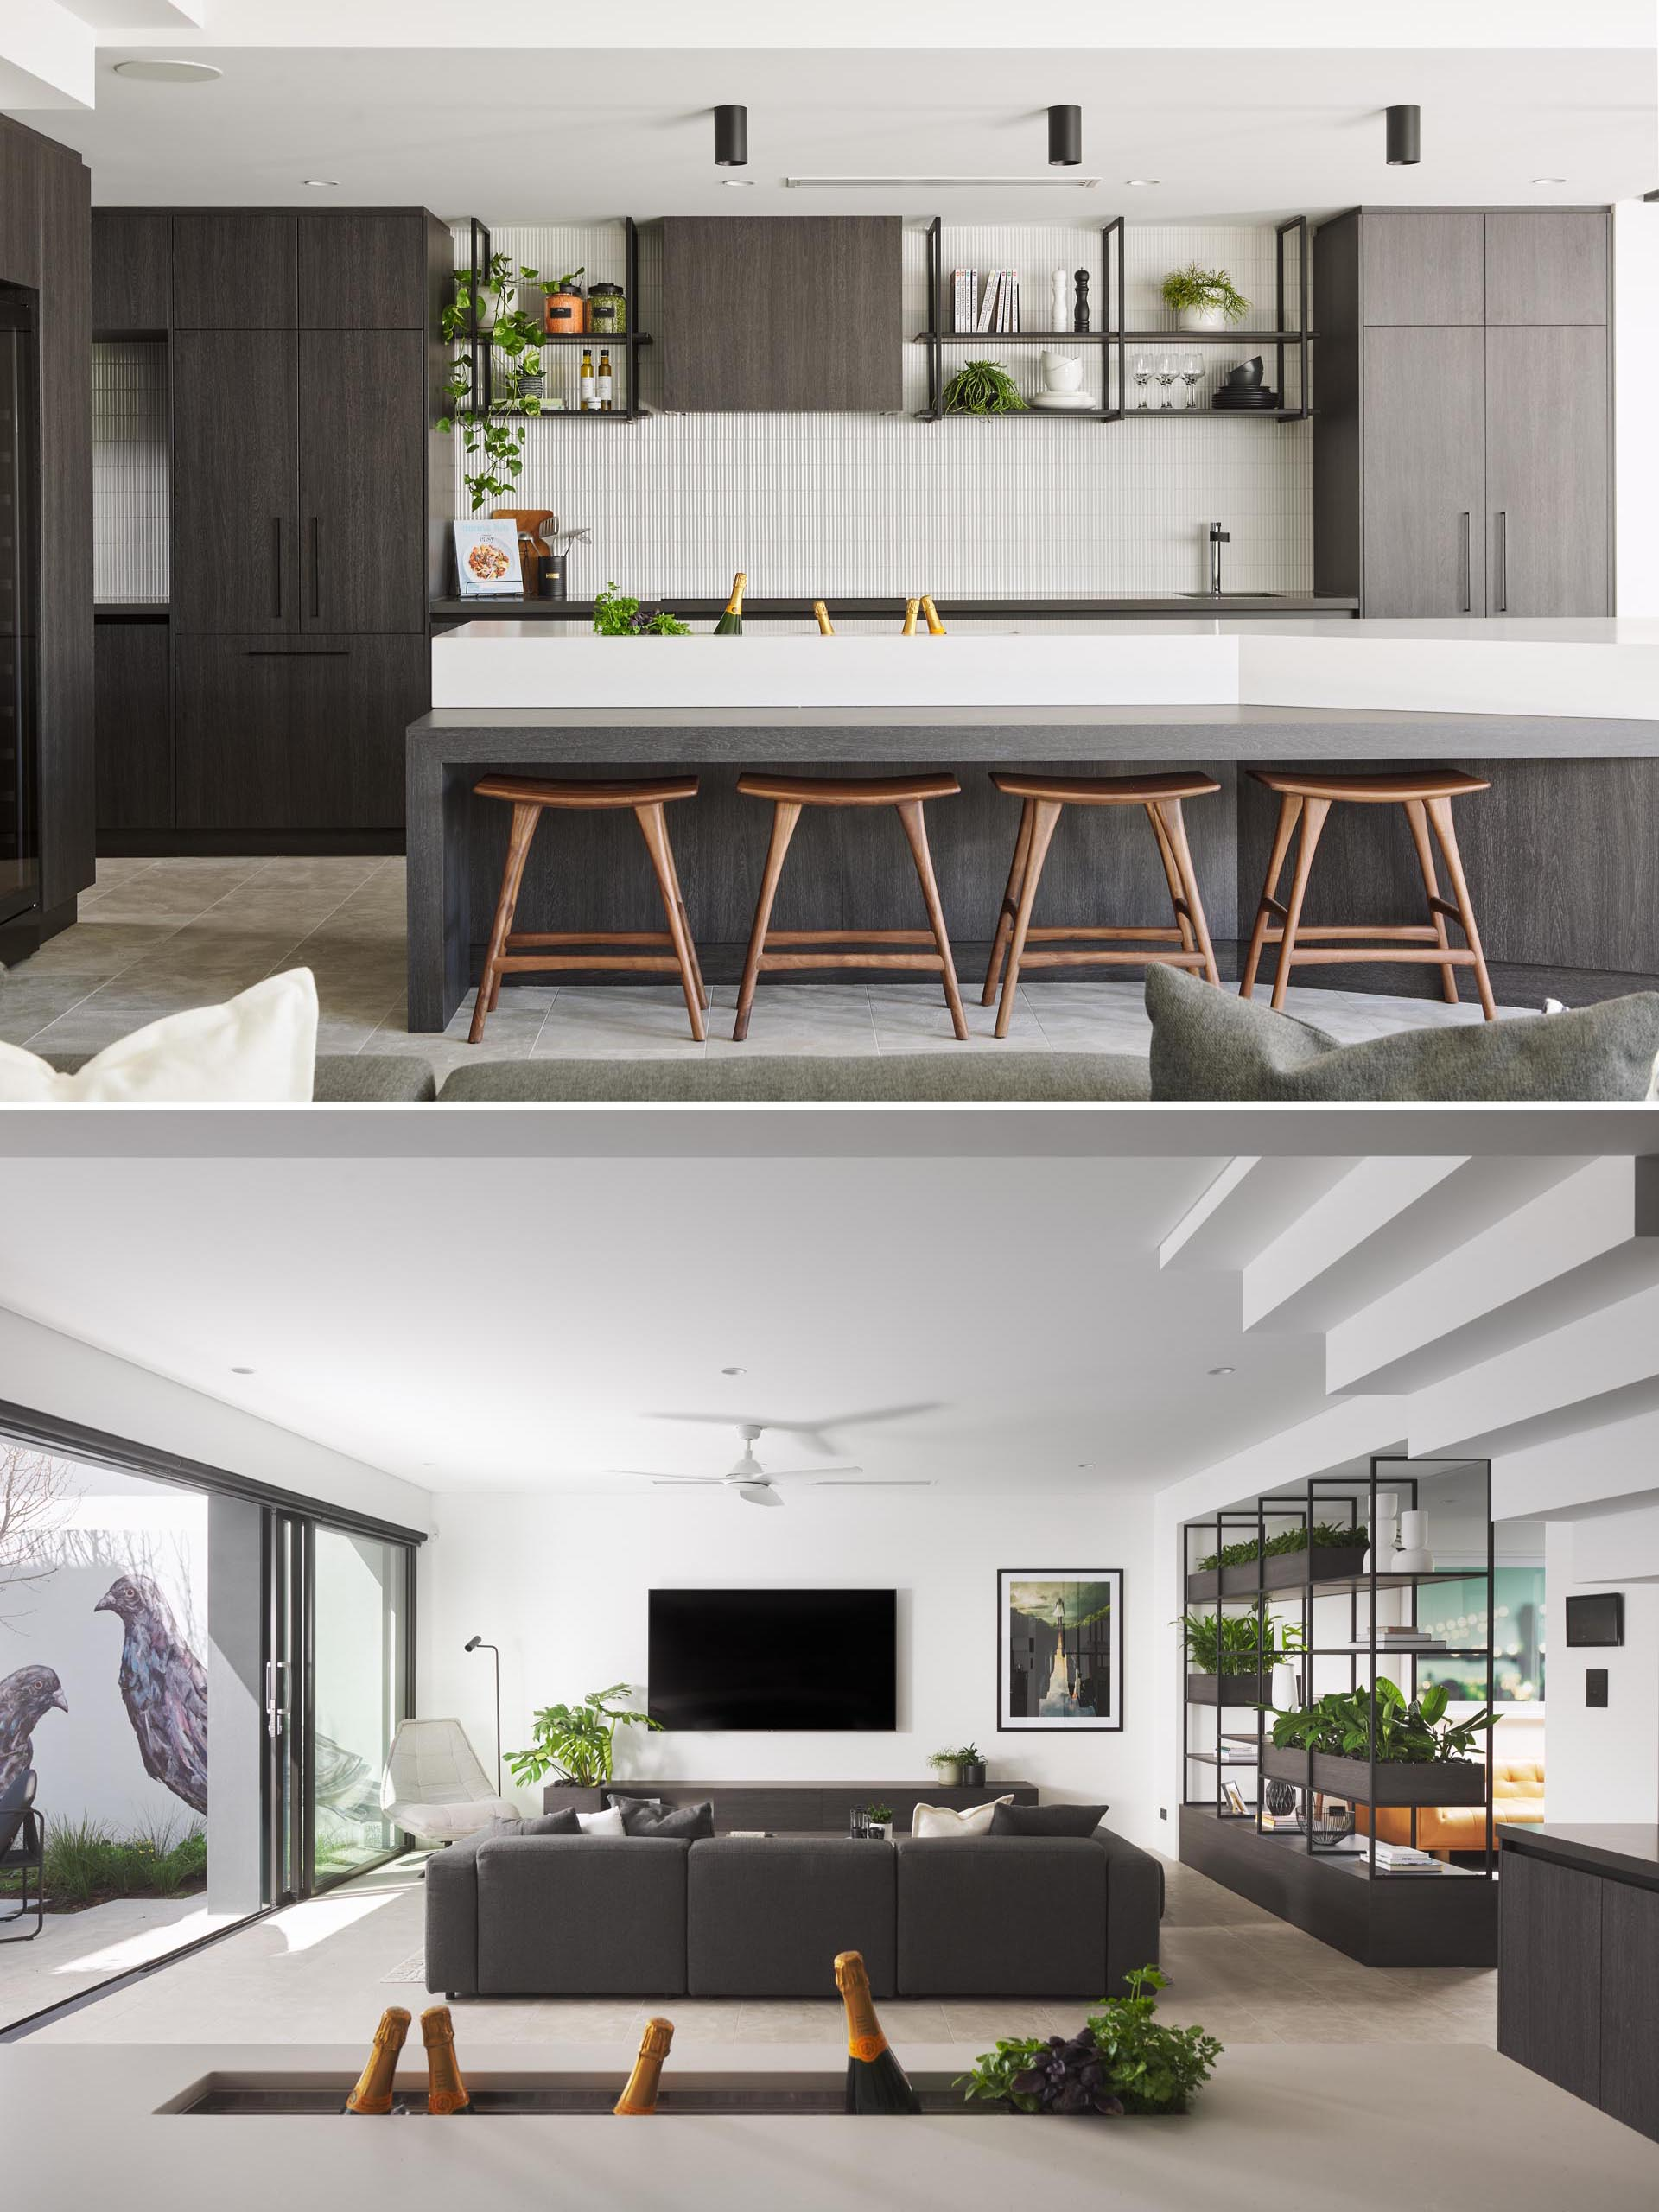 In this mdoern kitchen, dark cabinets and shelves contrast the white tile backsplash and thick white countertop of the island. There's also a drink trough built into the island, ideal for holding wine, champagne, or beer.